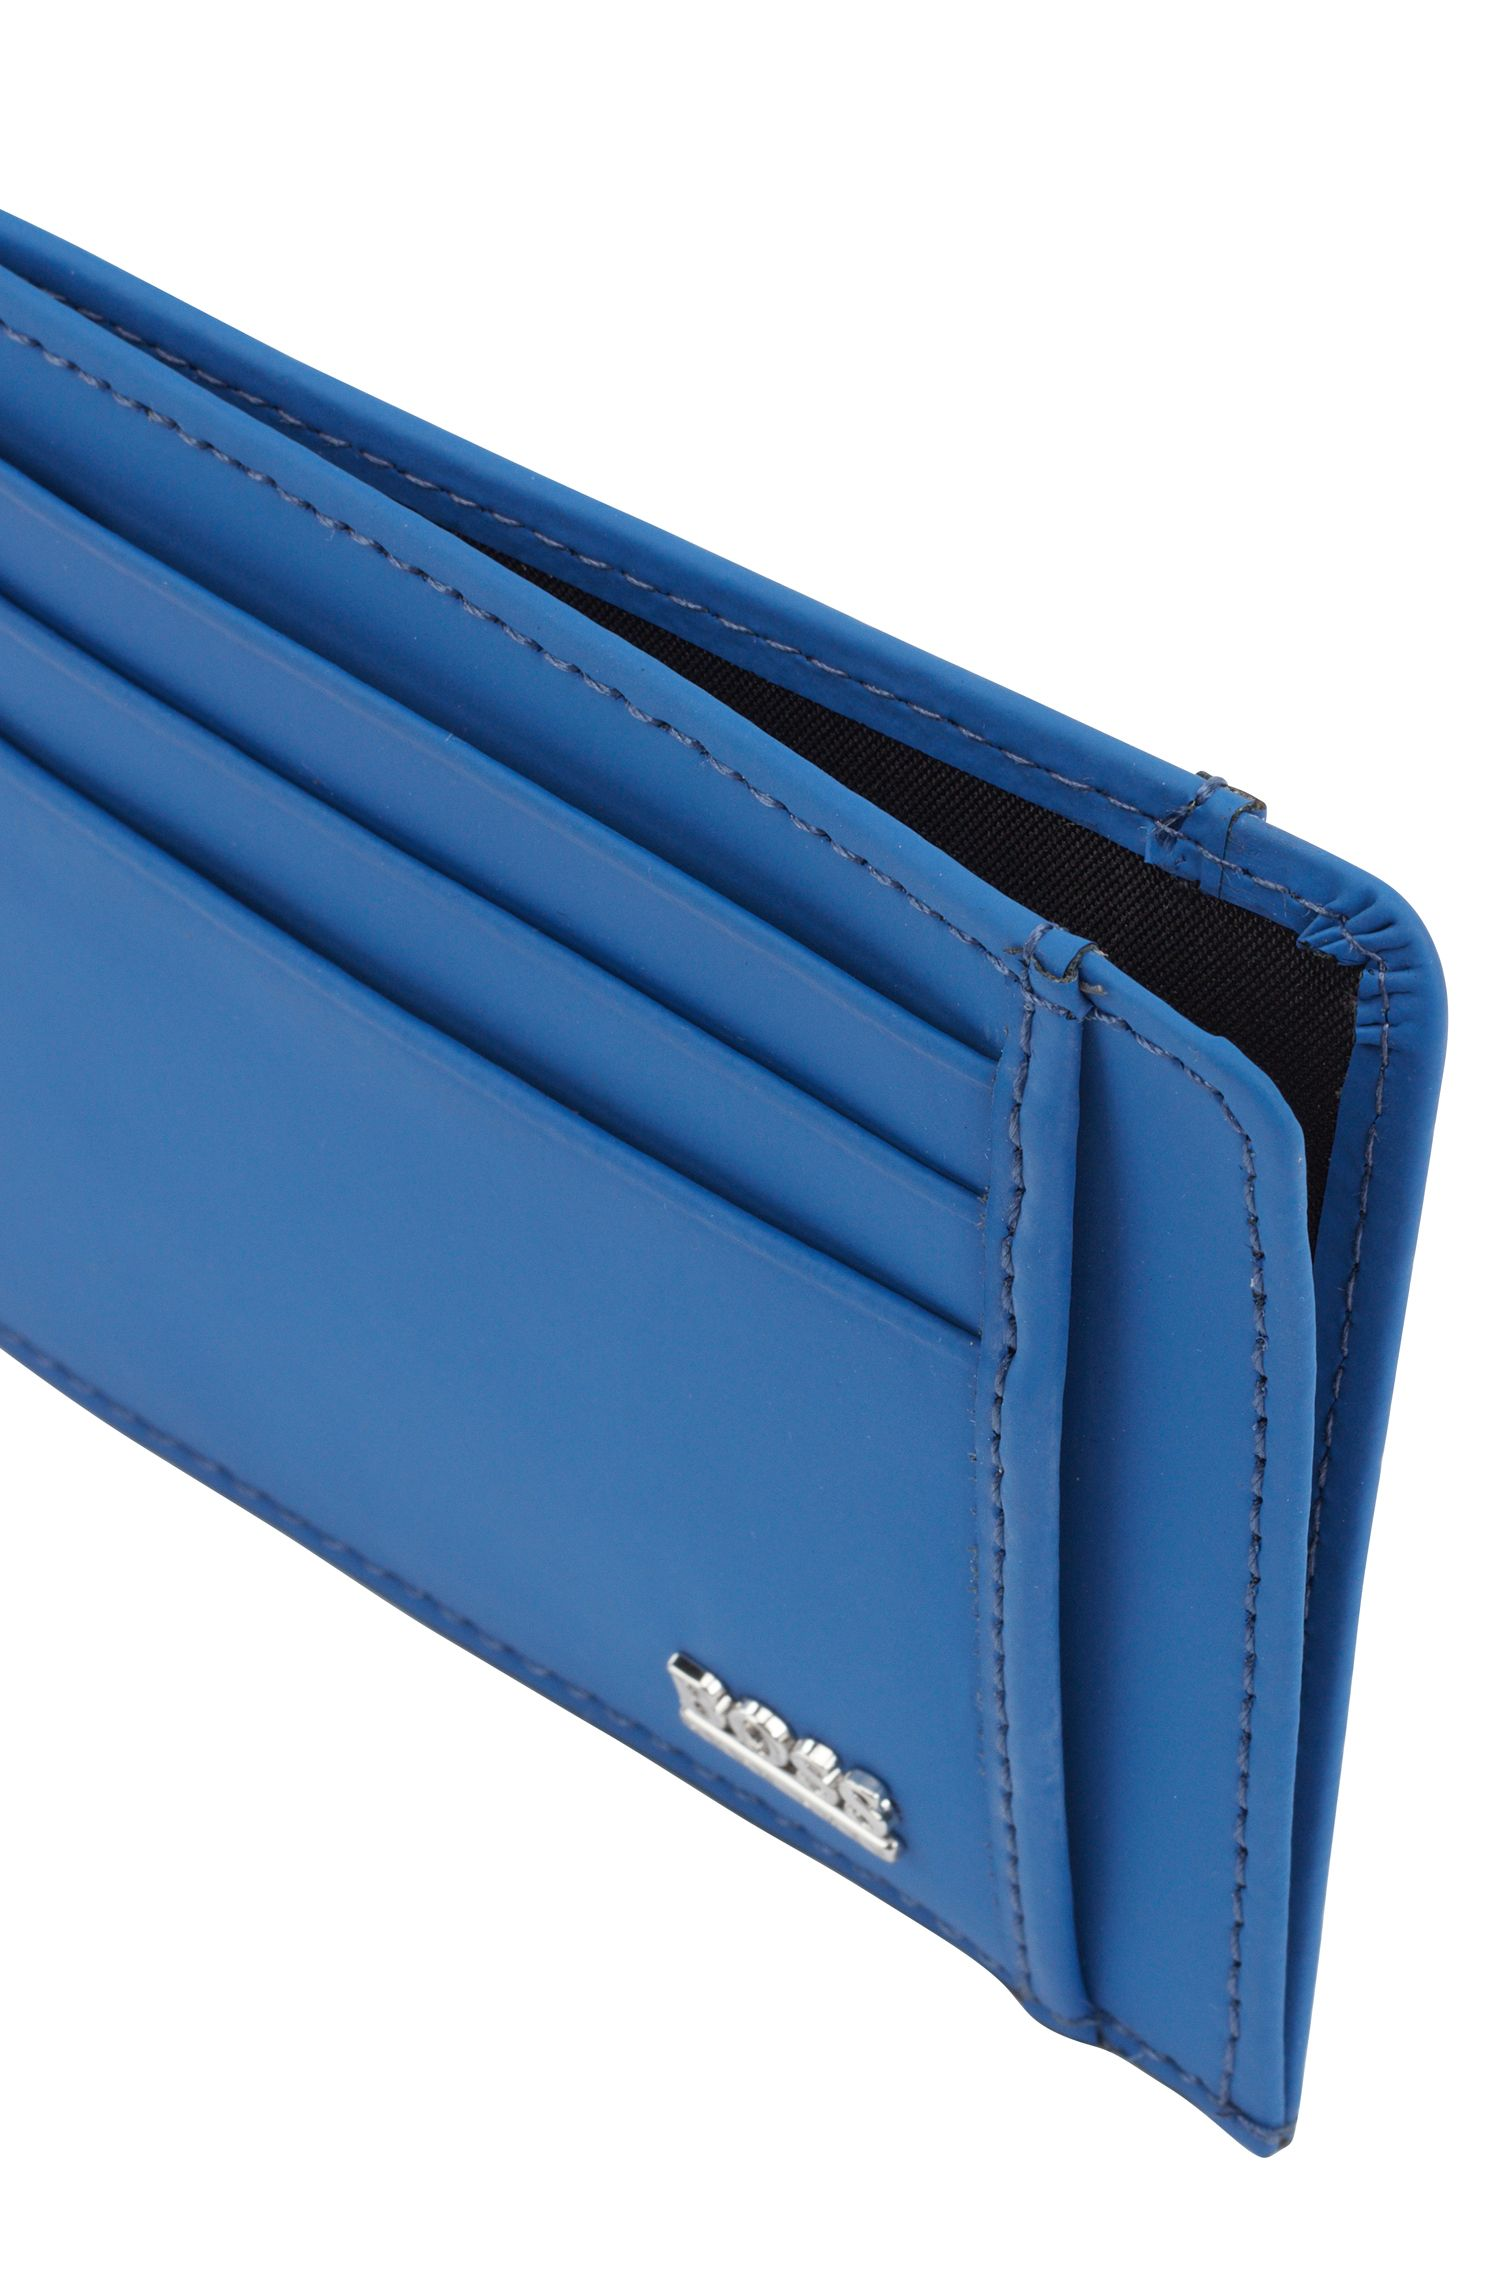 Signature Collection card holder in rubberised Italian leather, Turquoise